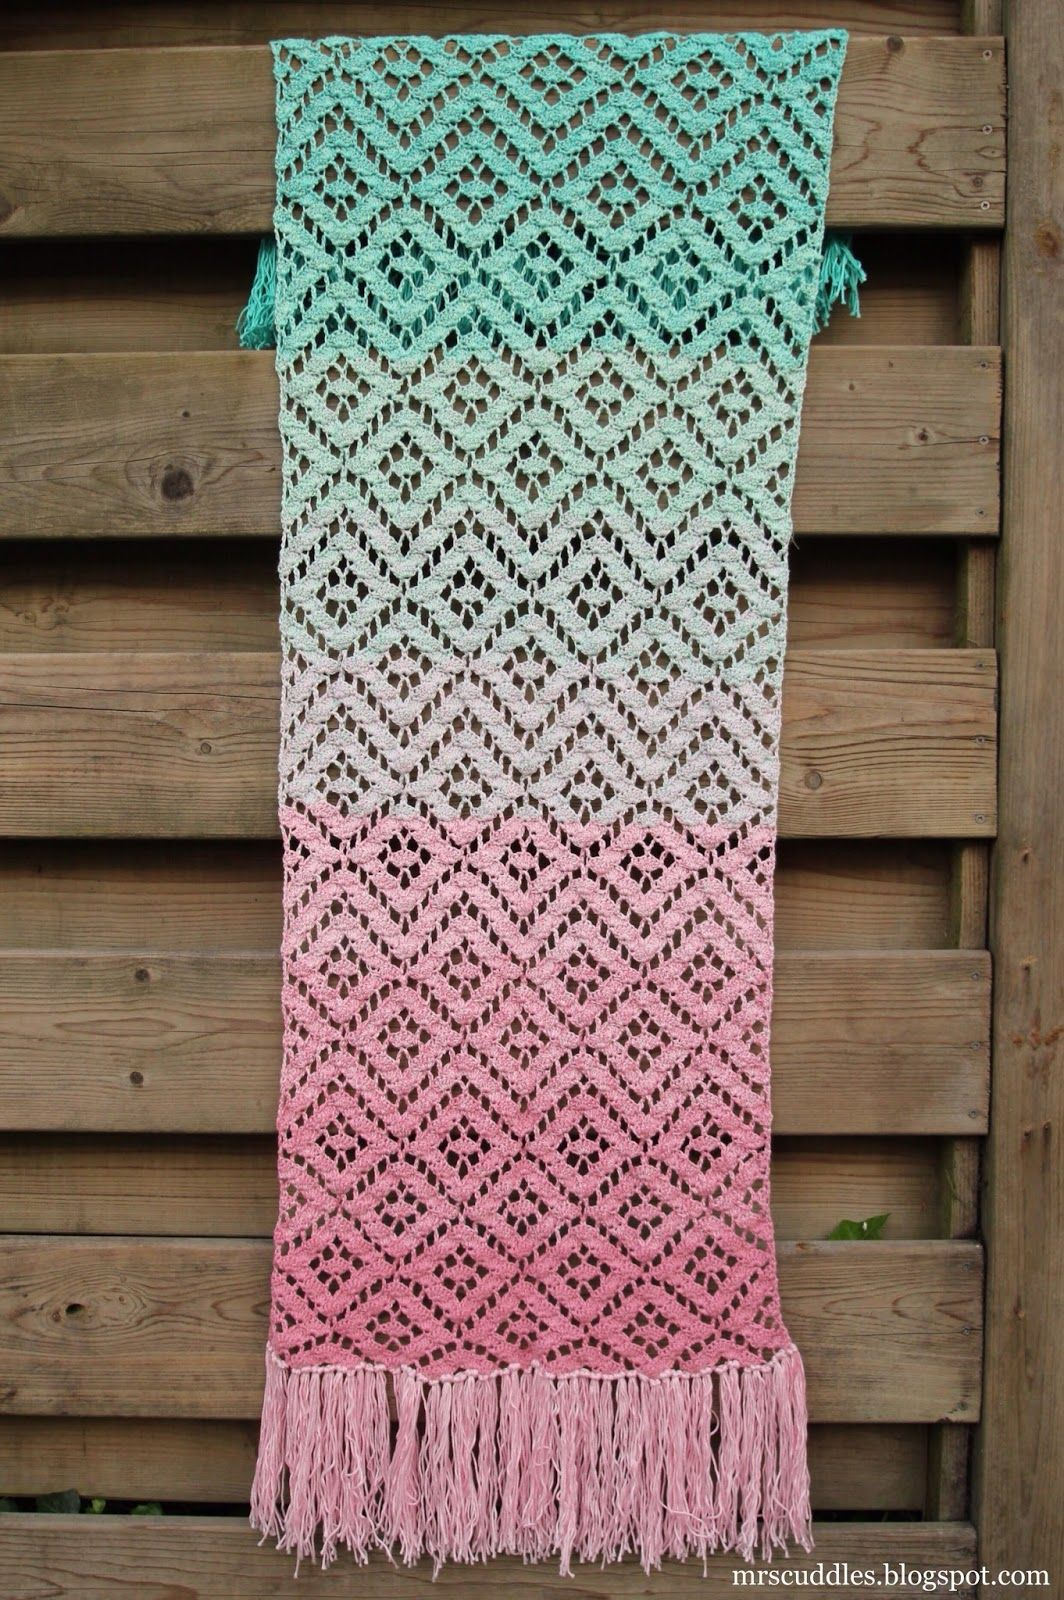 Mrs. Cuddles: Diamond lace scarf | crochet | Pinterest | Cuddling ...